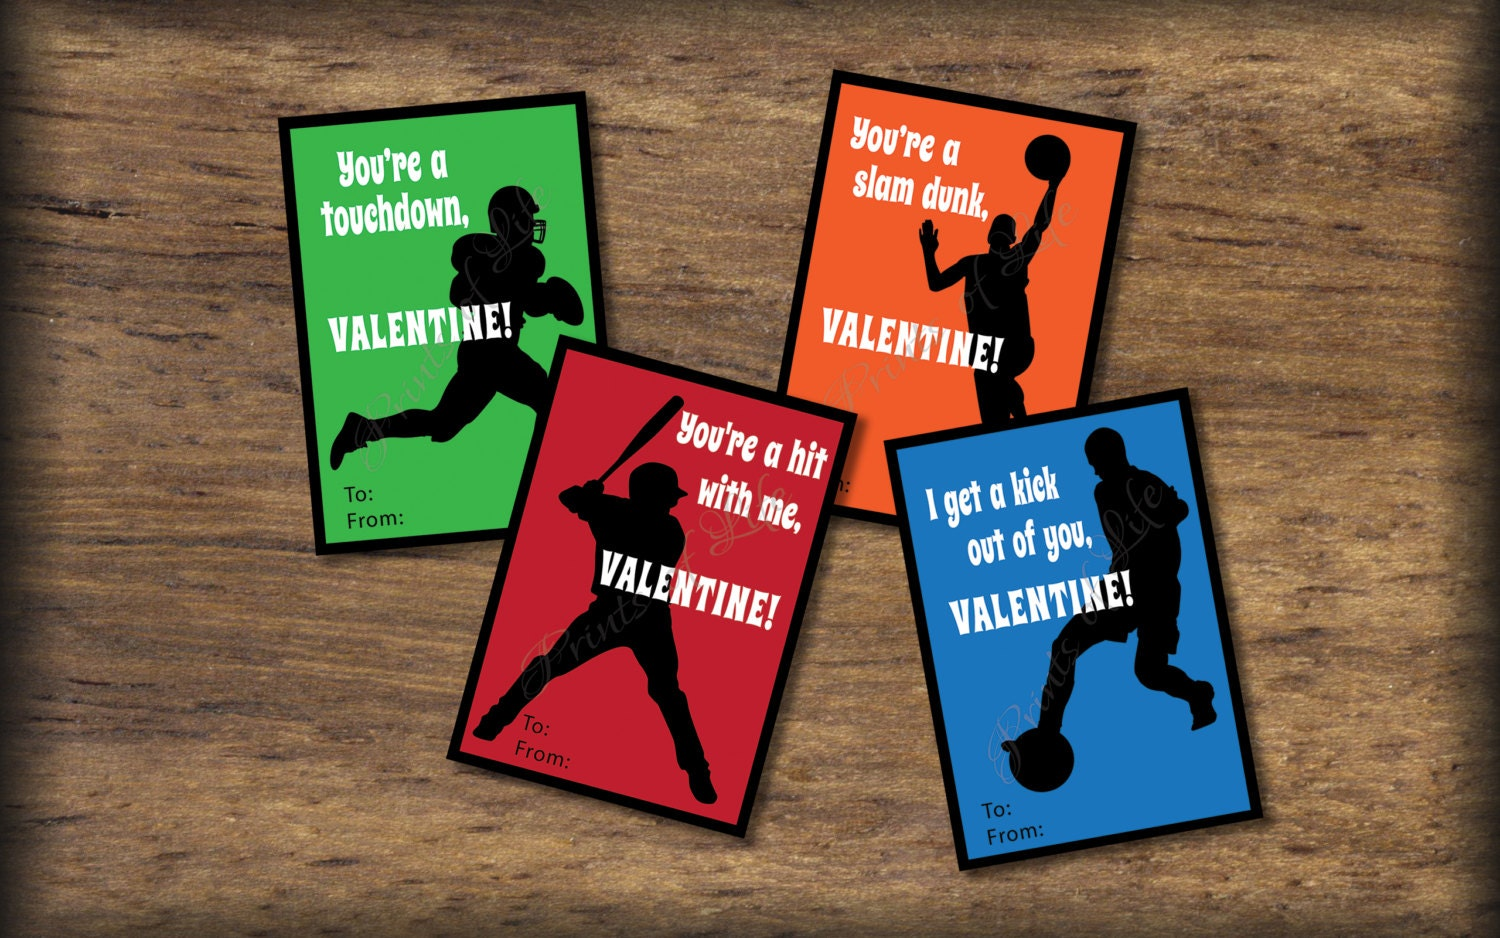 Valentine CountIt  PrimaryGames  Play Free Online Games